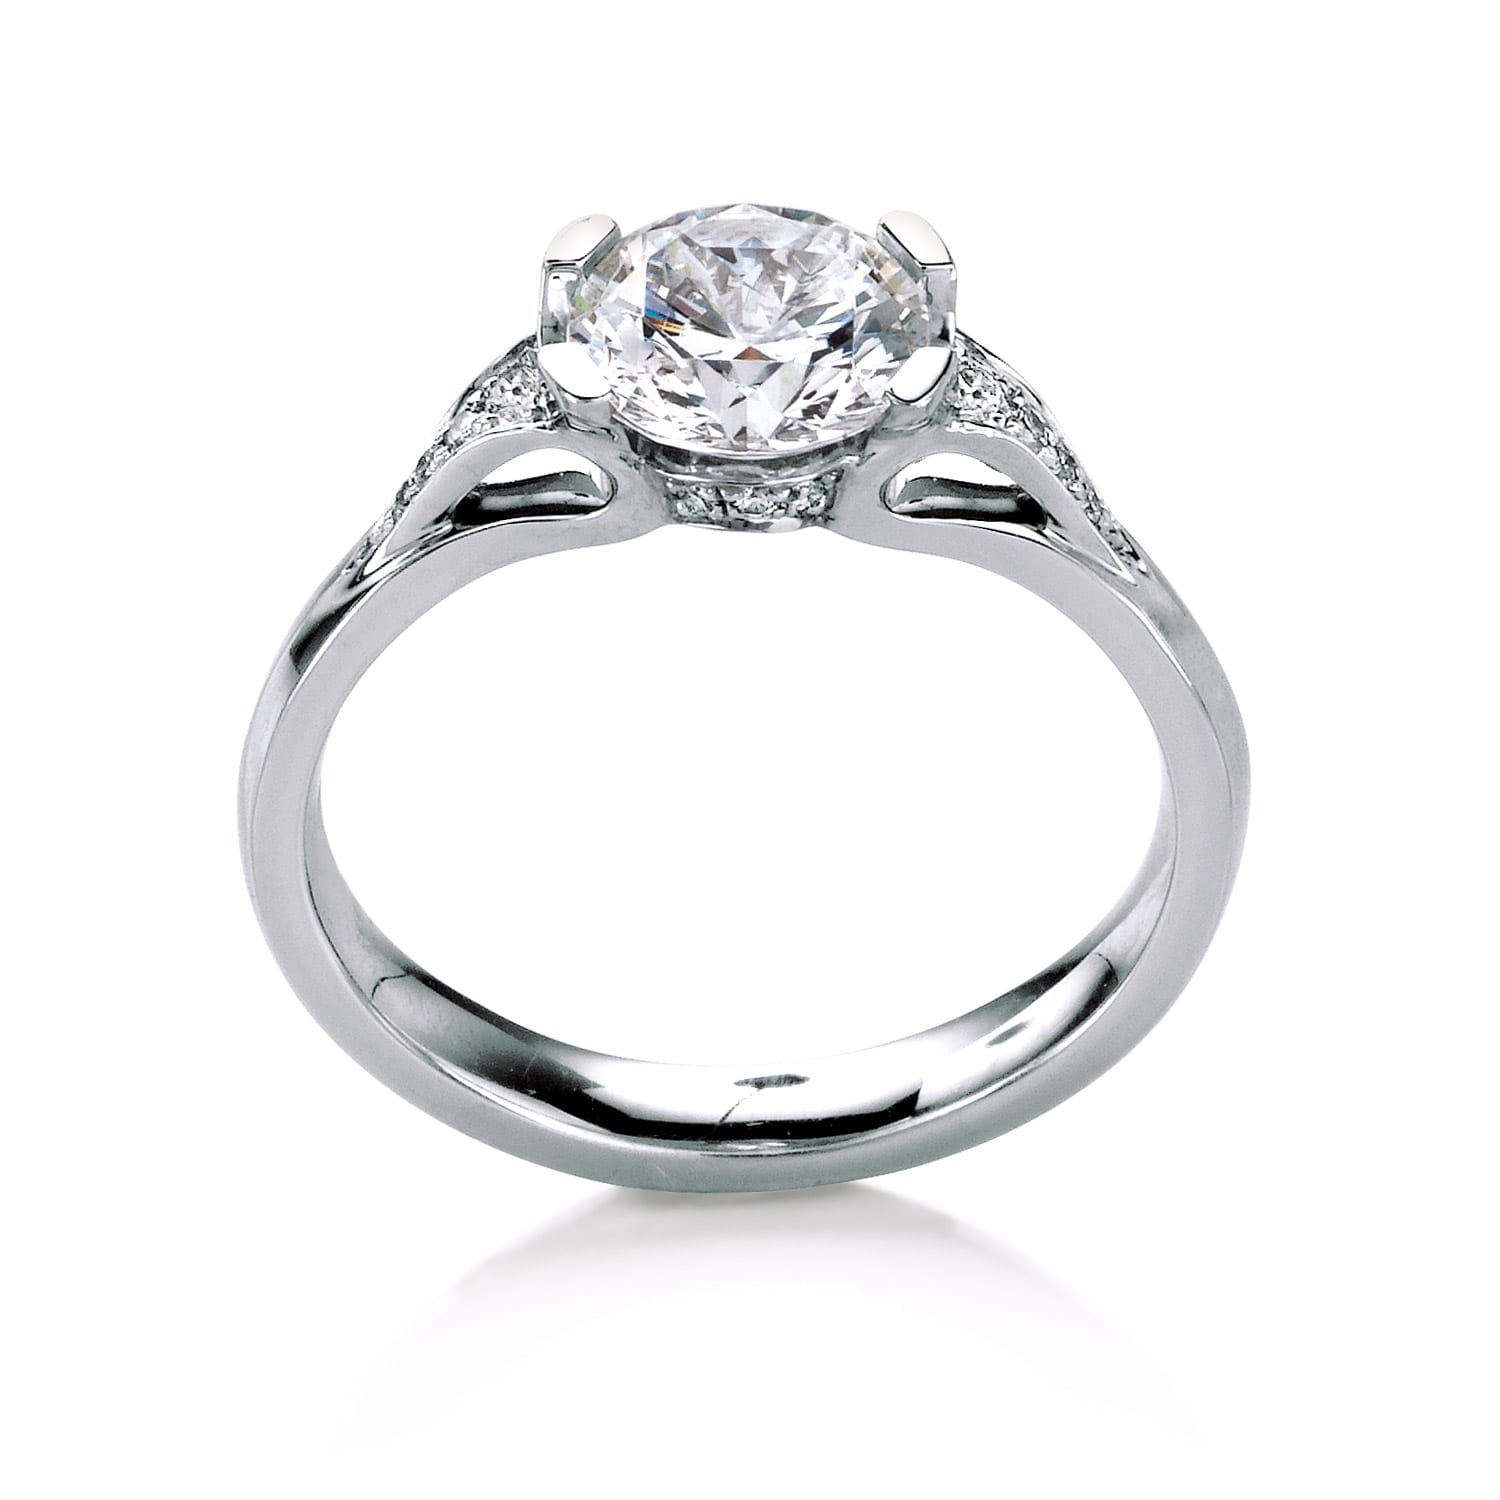 sold home product diamond antique low french cut platinum engagement wedding in european profile rings old deco art ring